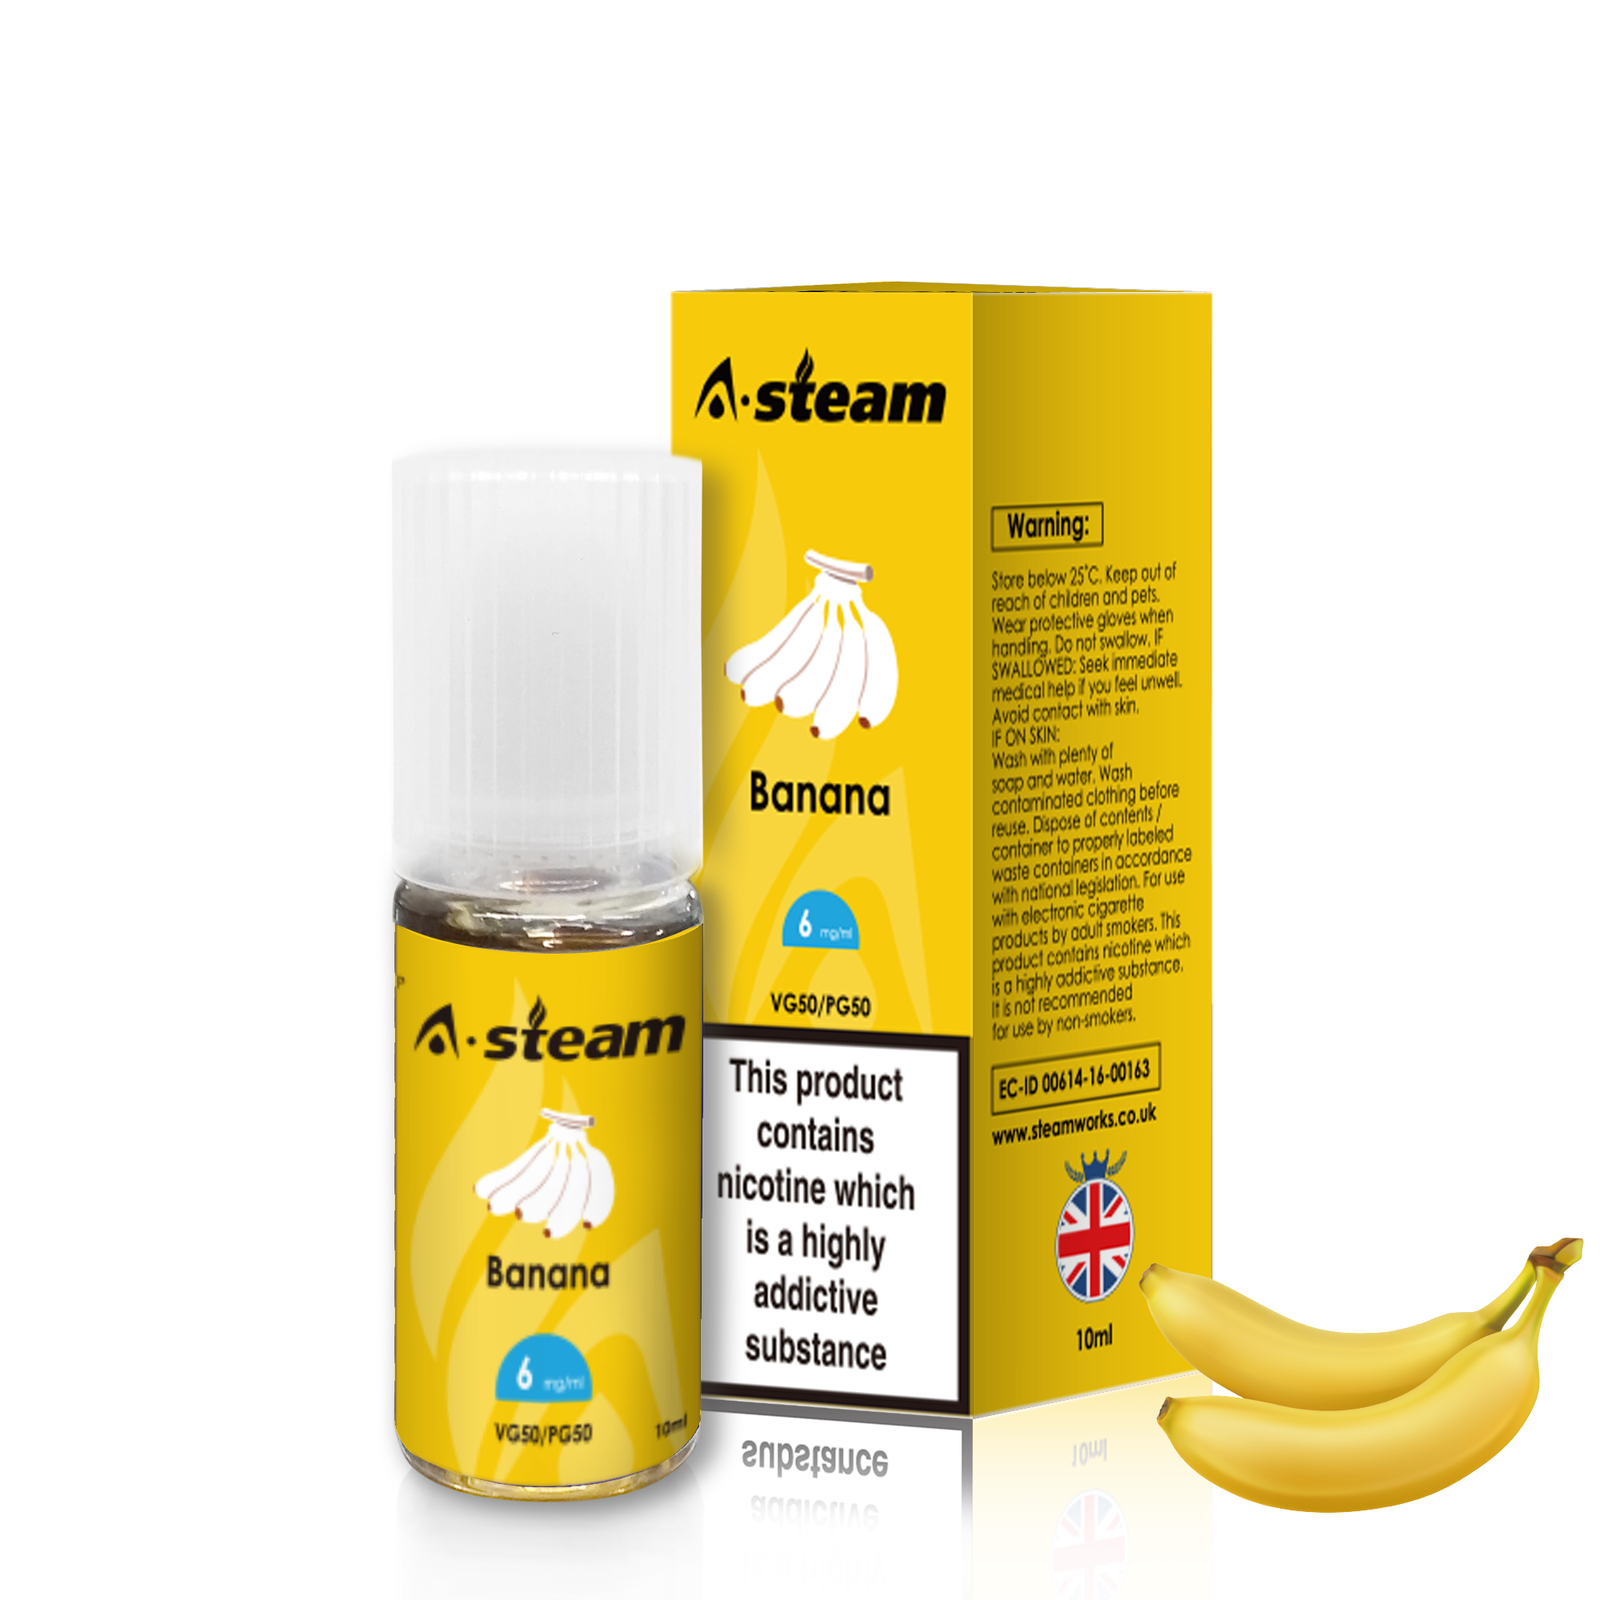 A-STEAM Banana